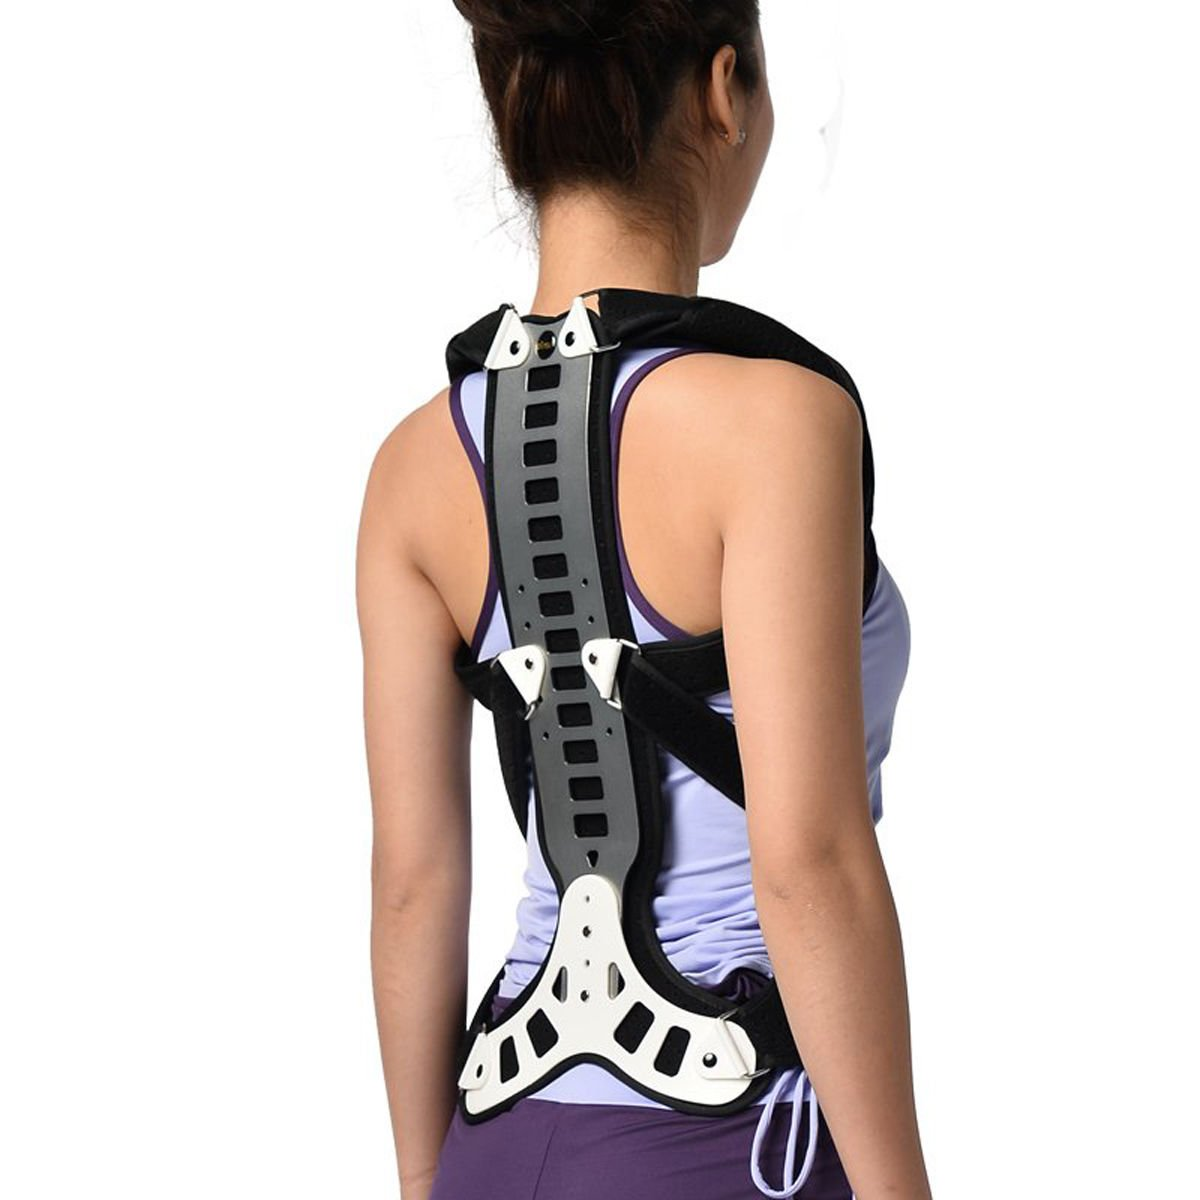 Slimerence Metal Back Posture Corrector, Spinal Brace Support Recover, Humpback Correction, Back Shoulder, Neck Pain Relief, Spinal Cord Posture Support, Adjustable, Periarthritis by Slimerence